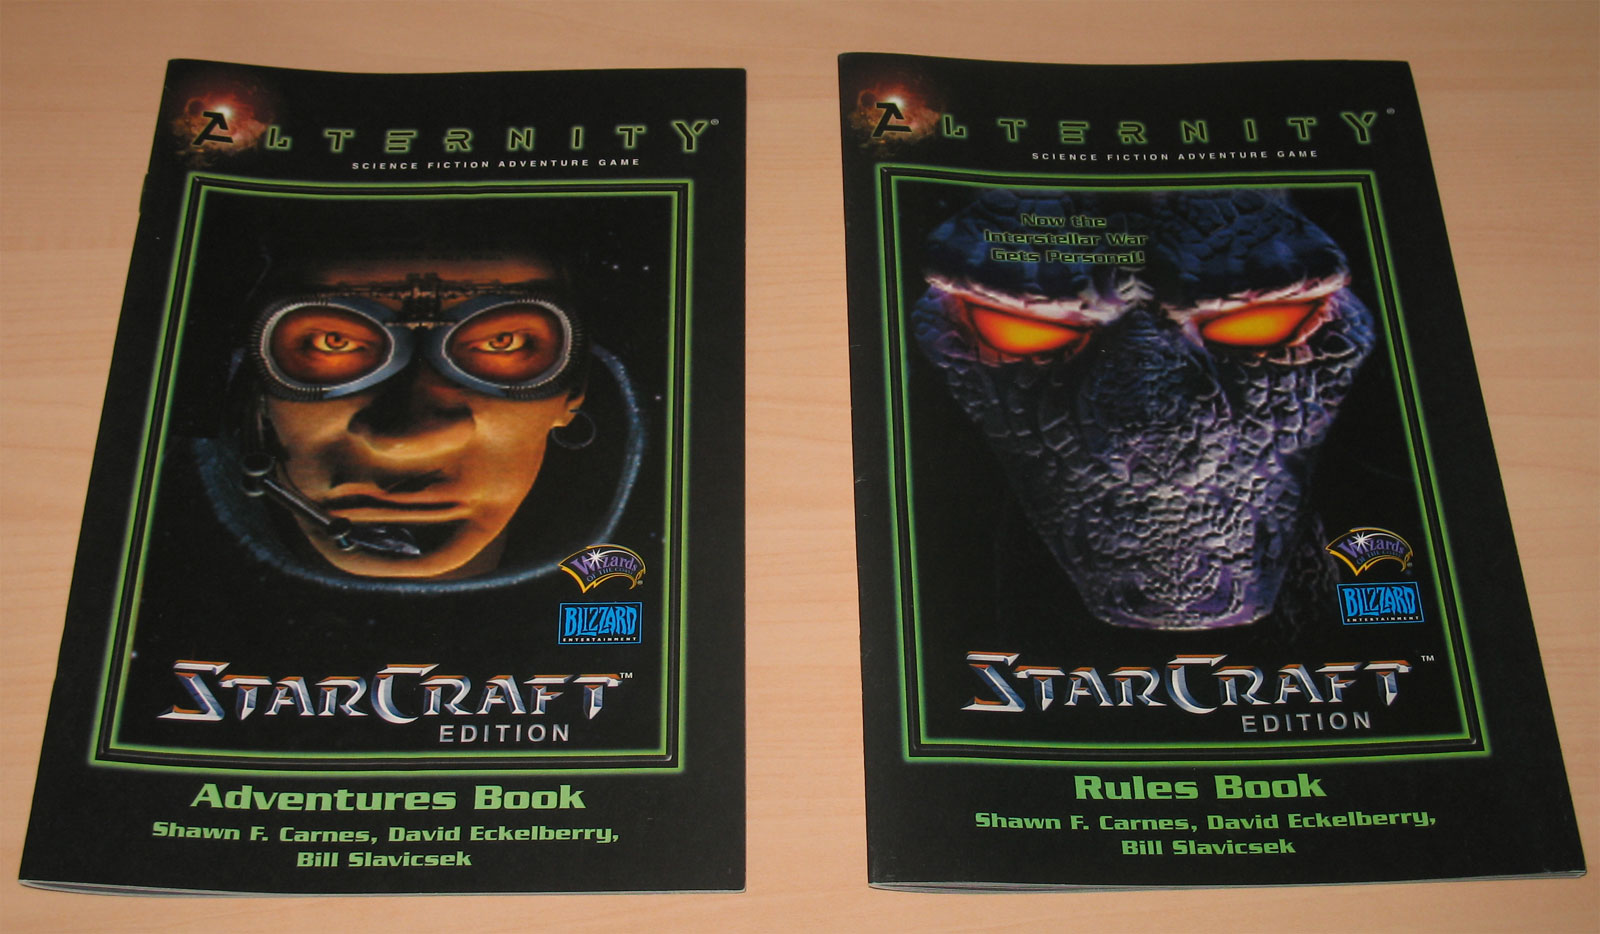 Jeu de rôles sur table Starcraft sorti en 2000 et édité par Wizards of the coast.